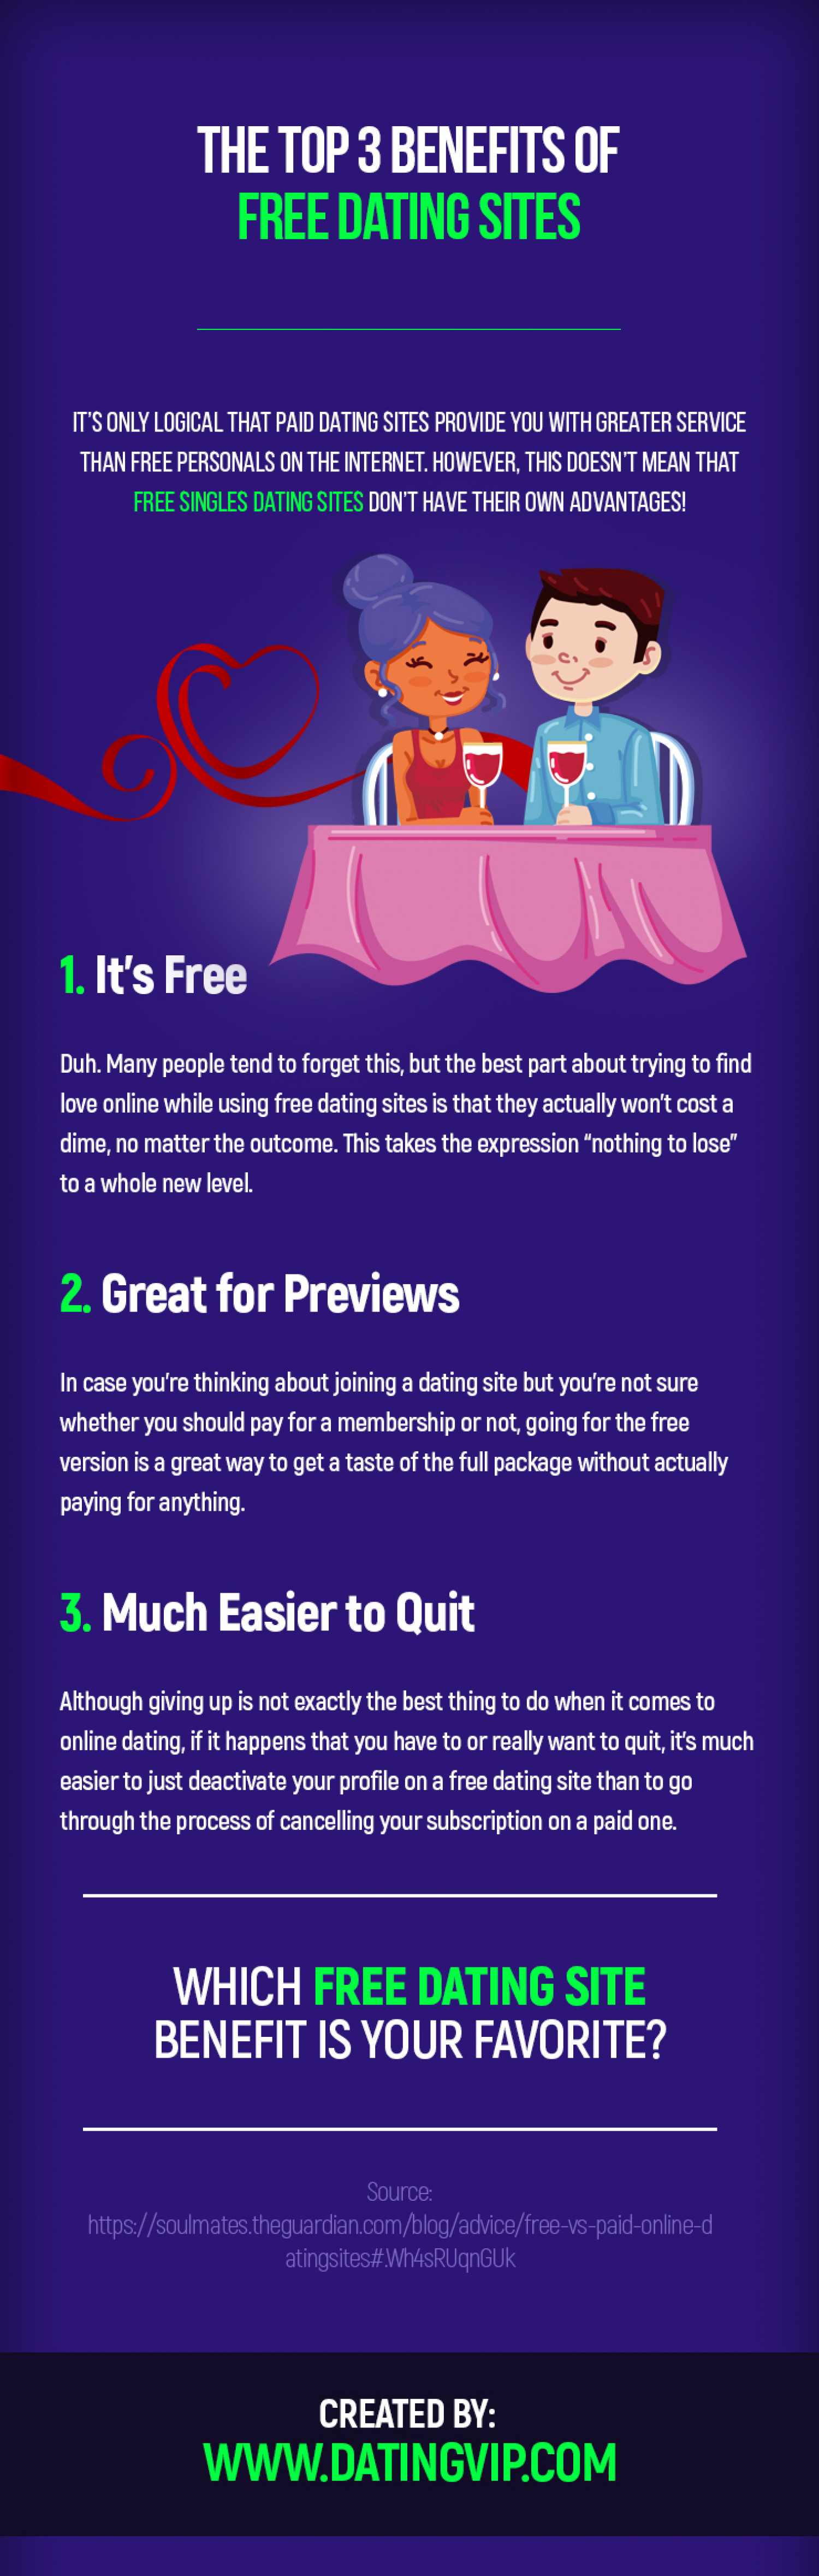 The Top 3 Benefits of Free Dating Sites Infographic